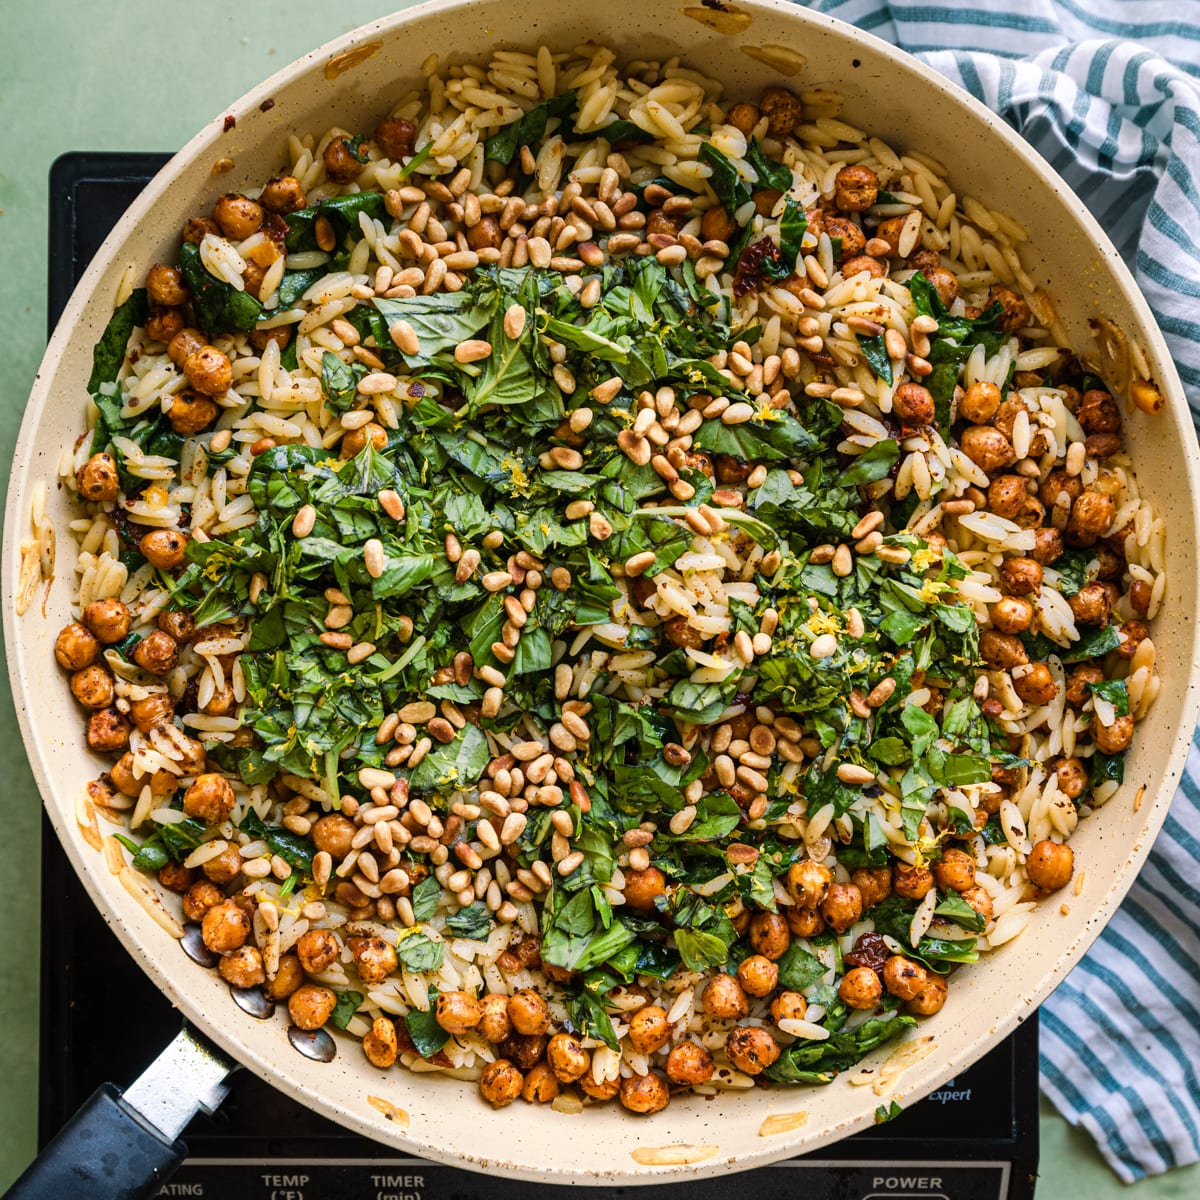 lemon orzo pasta salad in saute pan with fresh basil and pine nuts on top